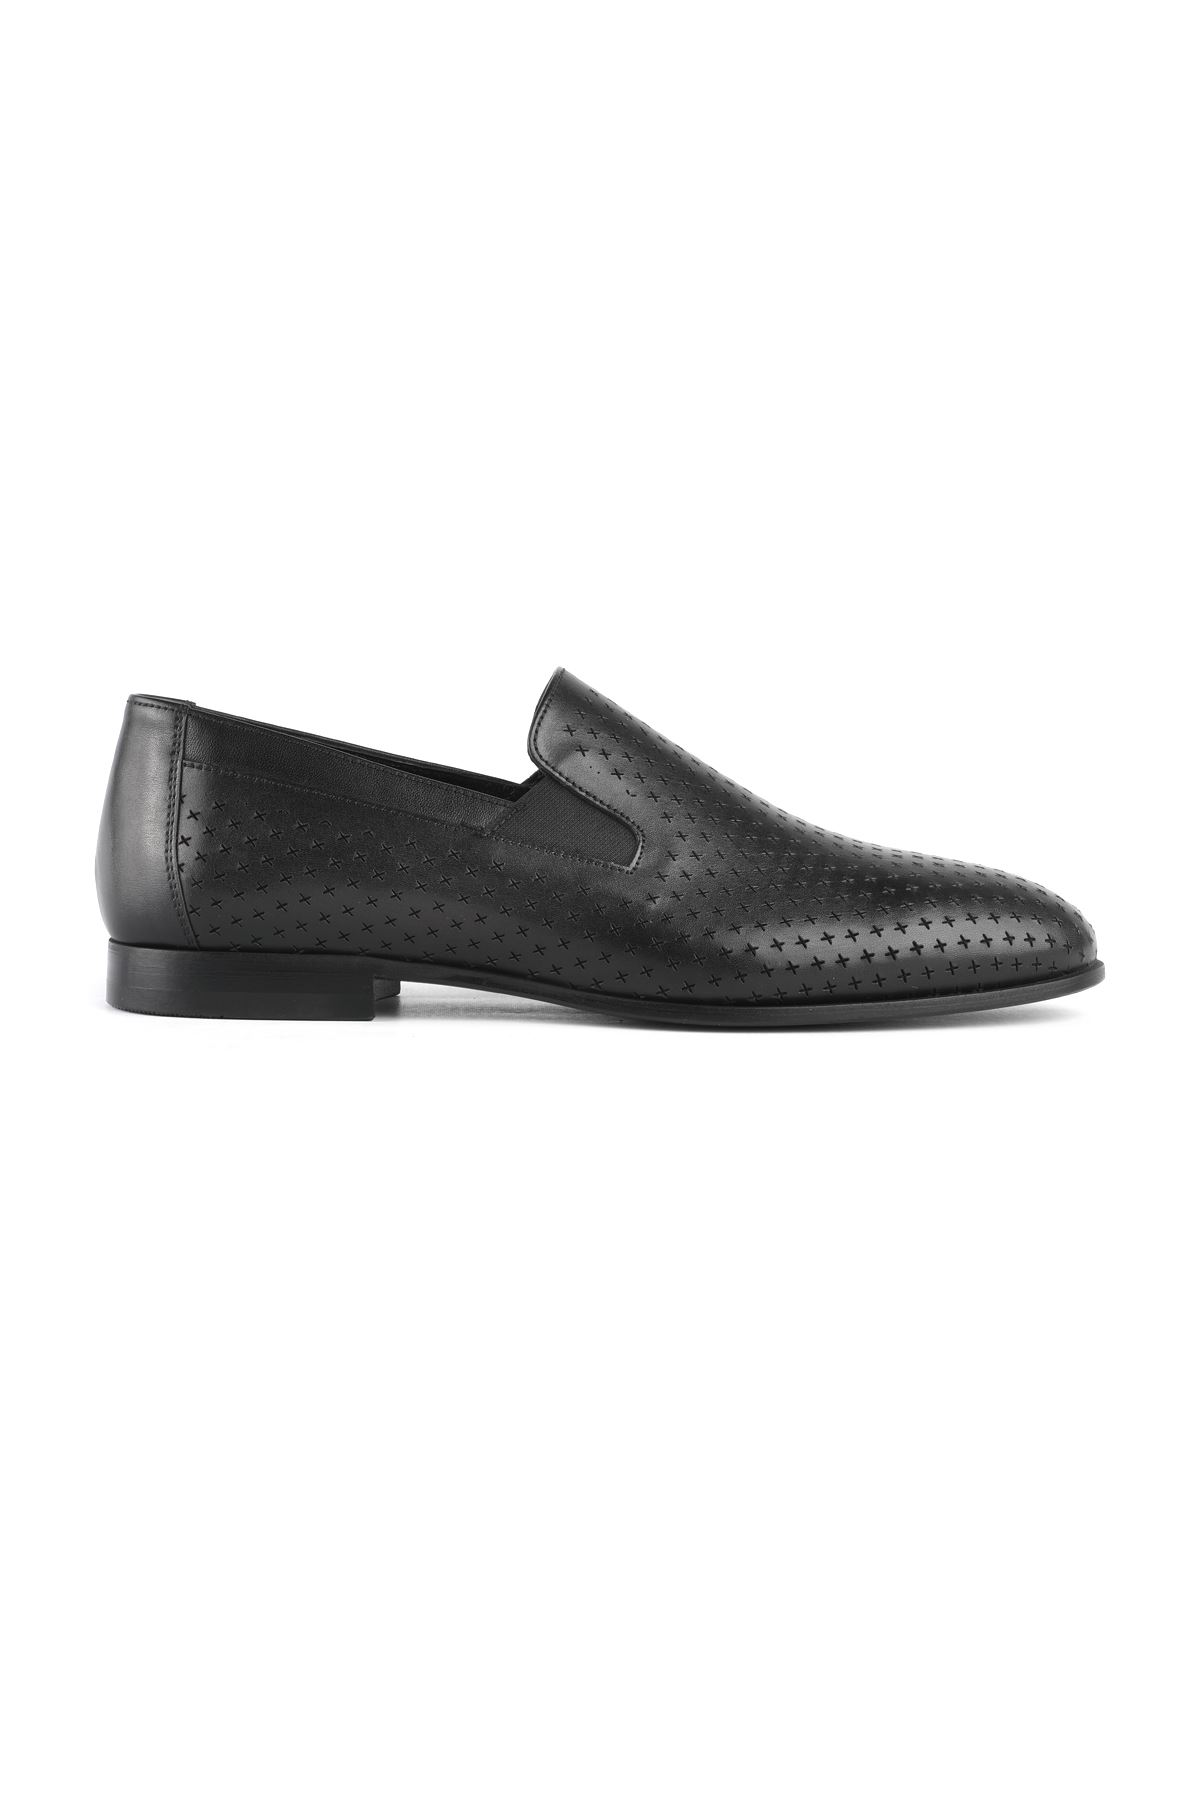 Libero 3266 Black Loafer Shoes